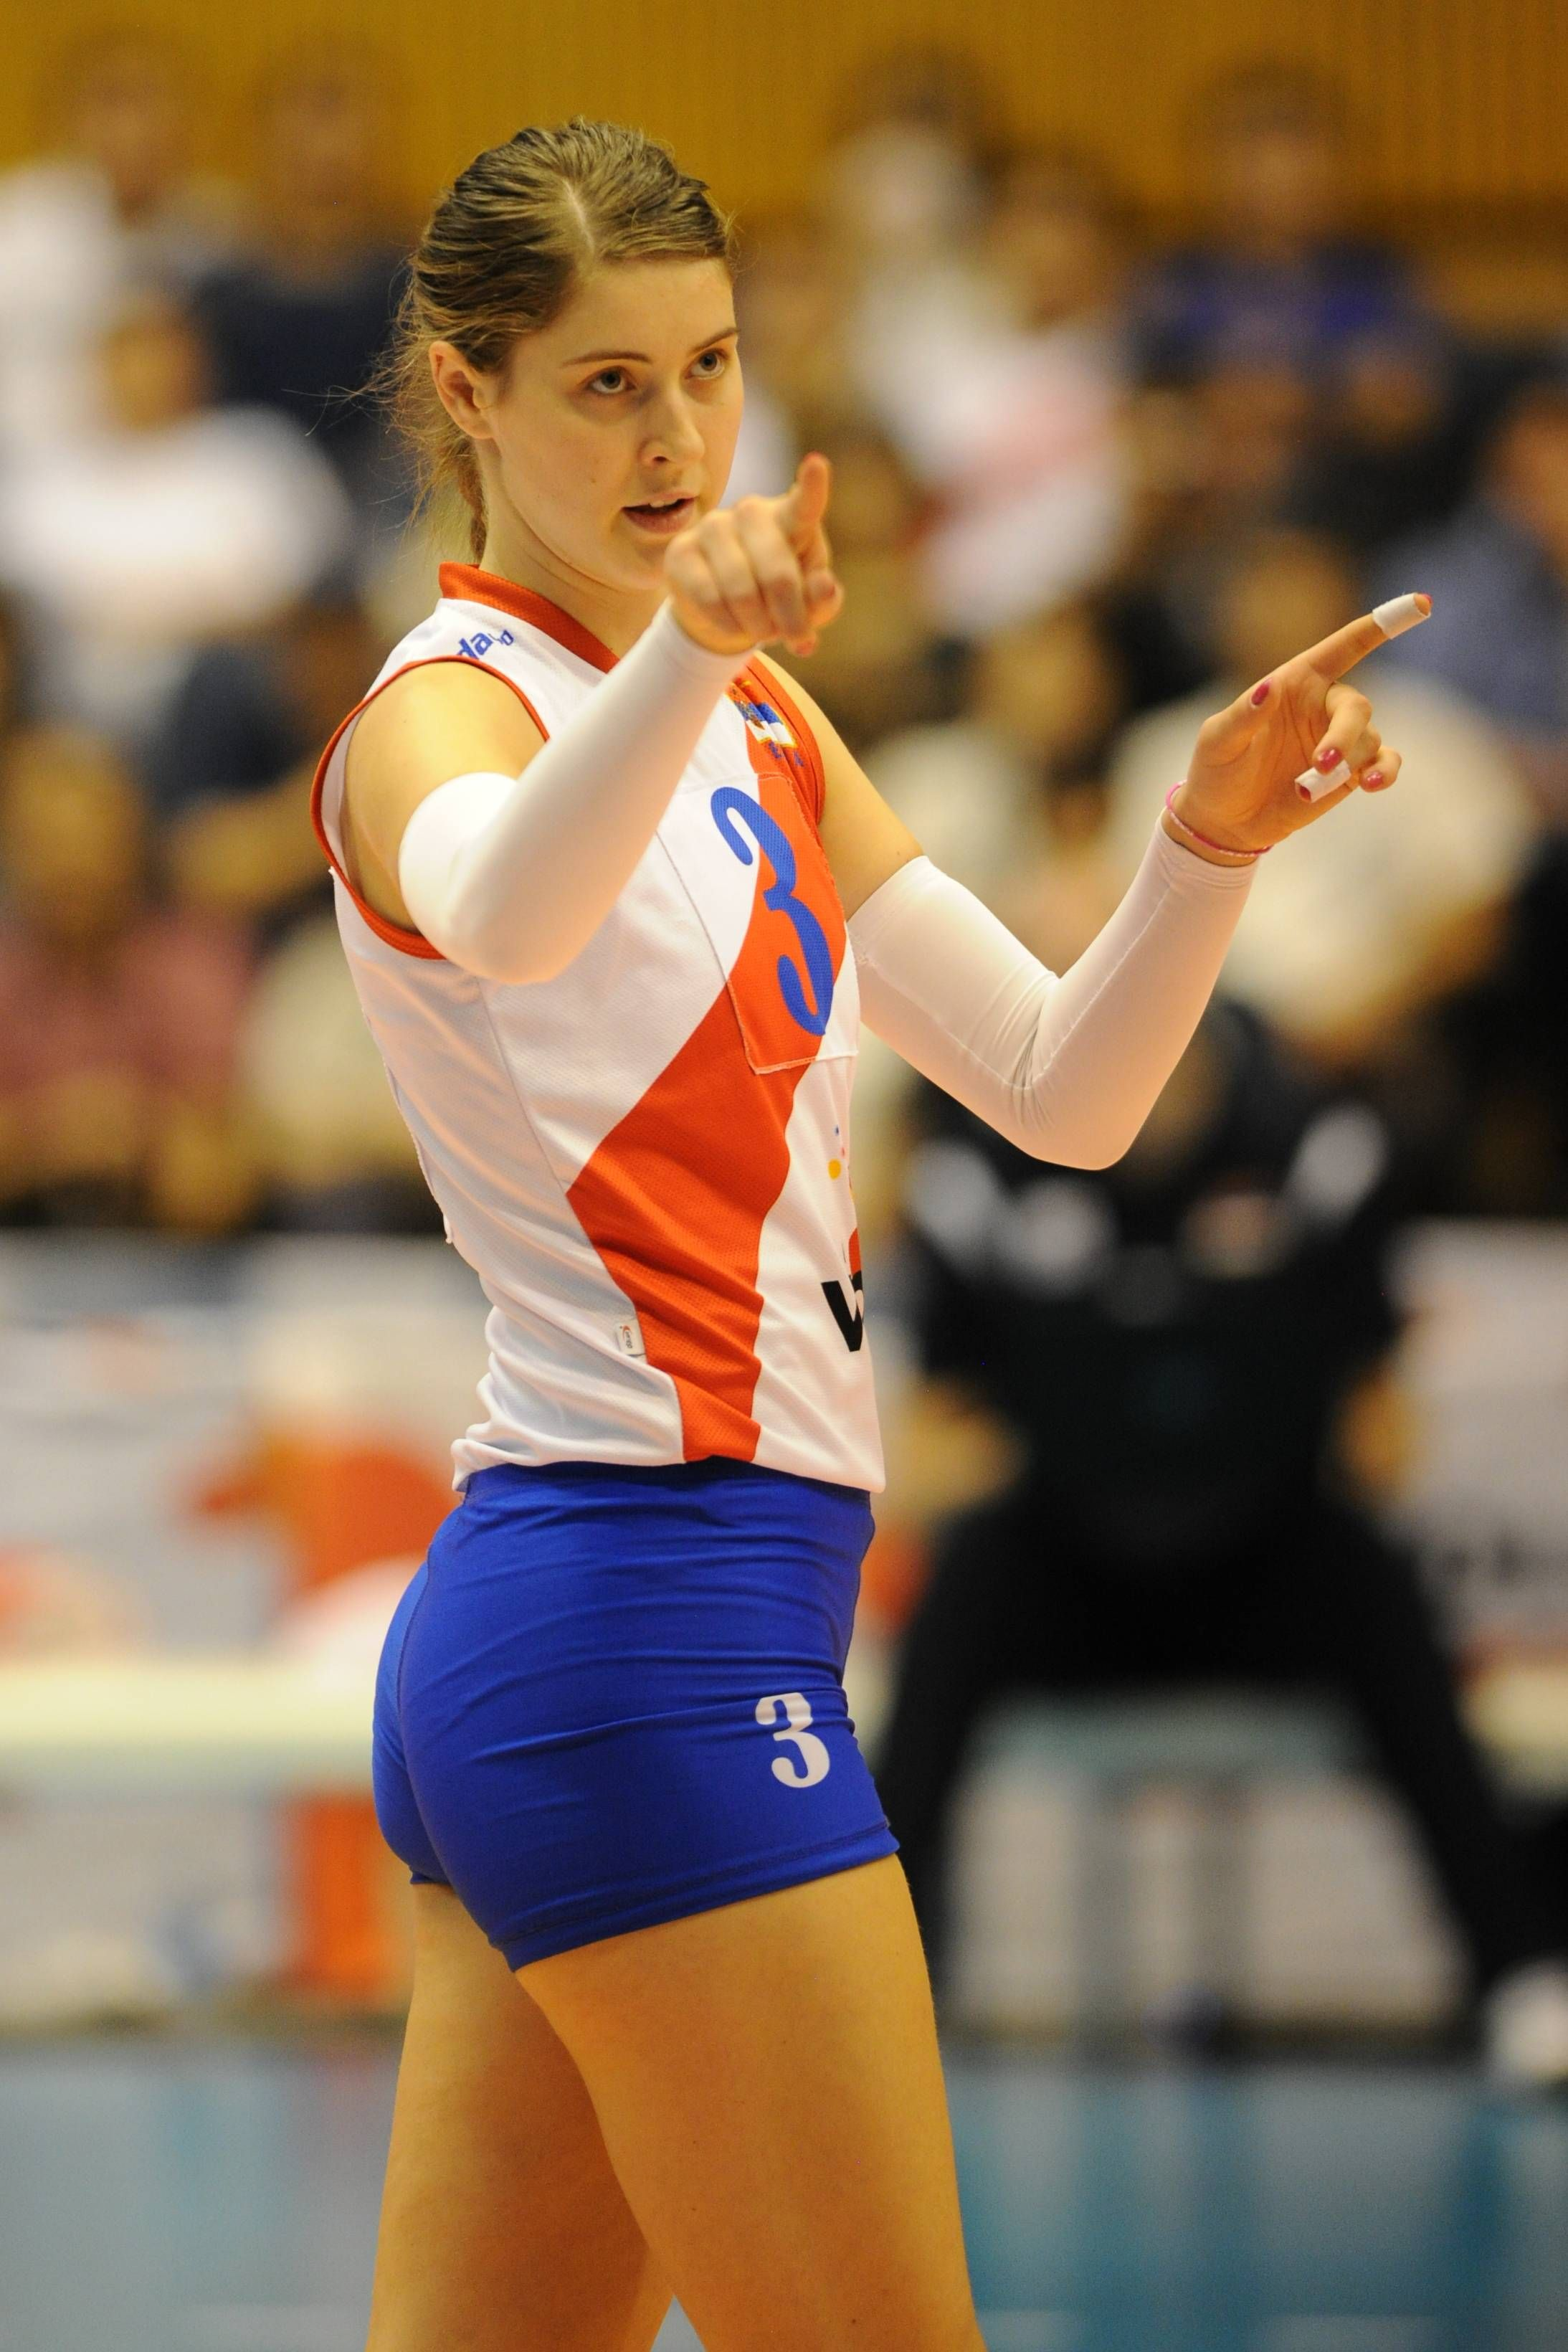 Bianka Busa Serbian Female Volleyball Player Women Volleyball Female Volleyball Players Volleyball Players